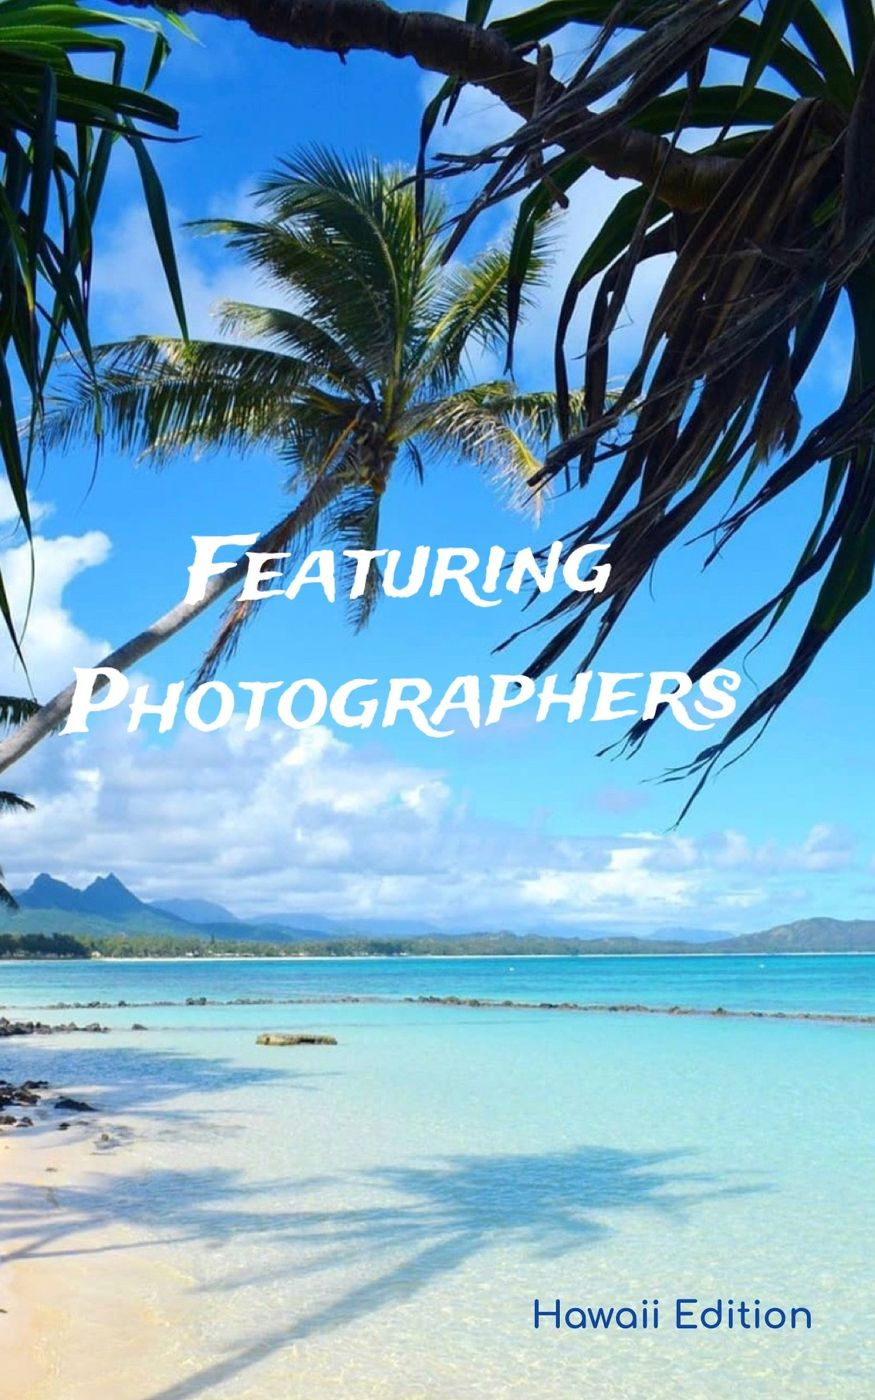 Featuring content creators and photographers | Hawaii Edition